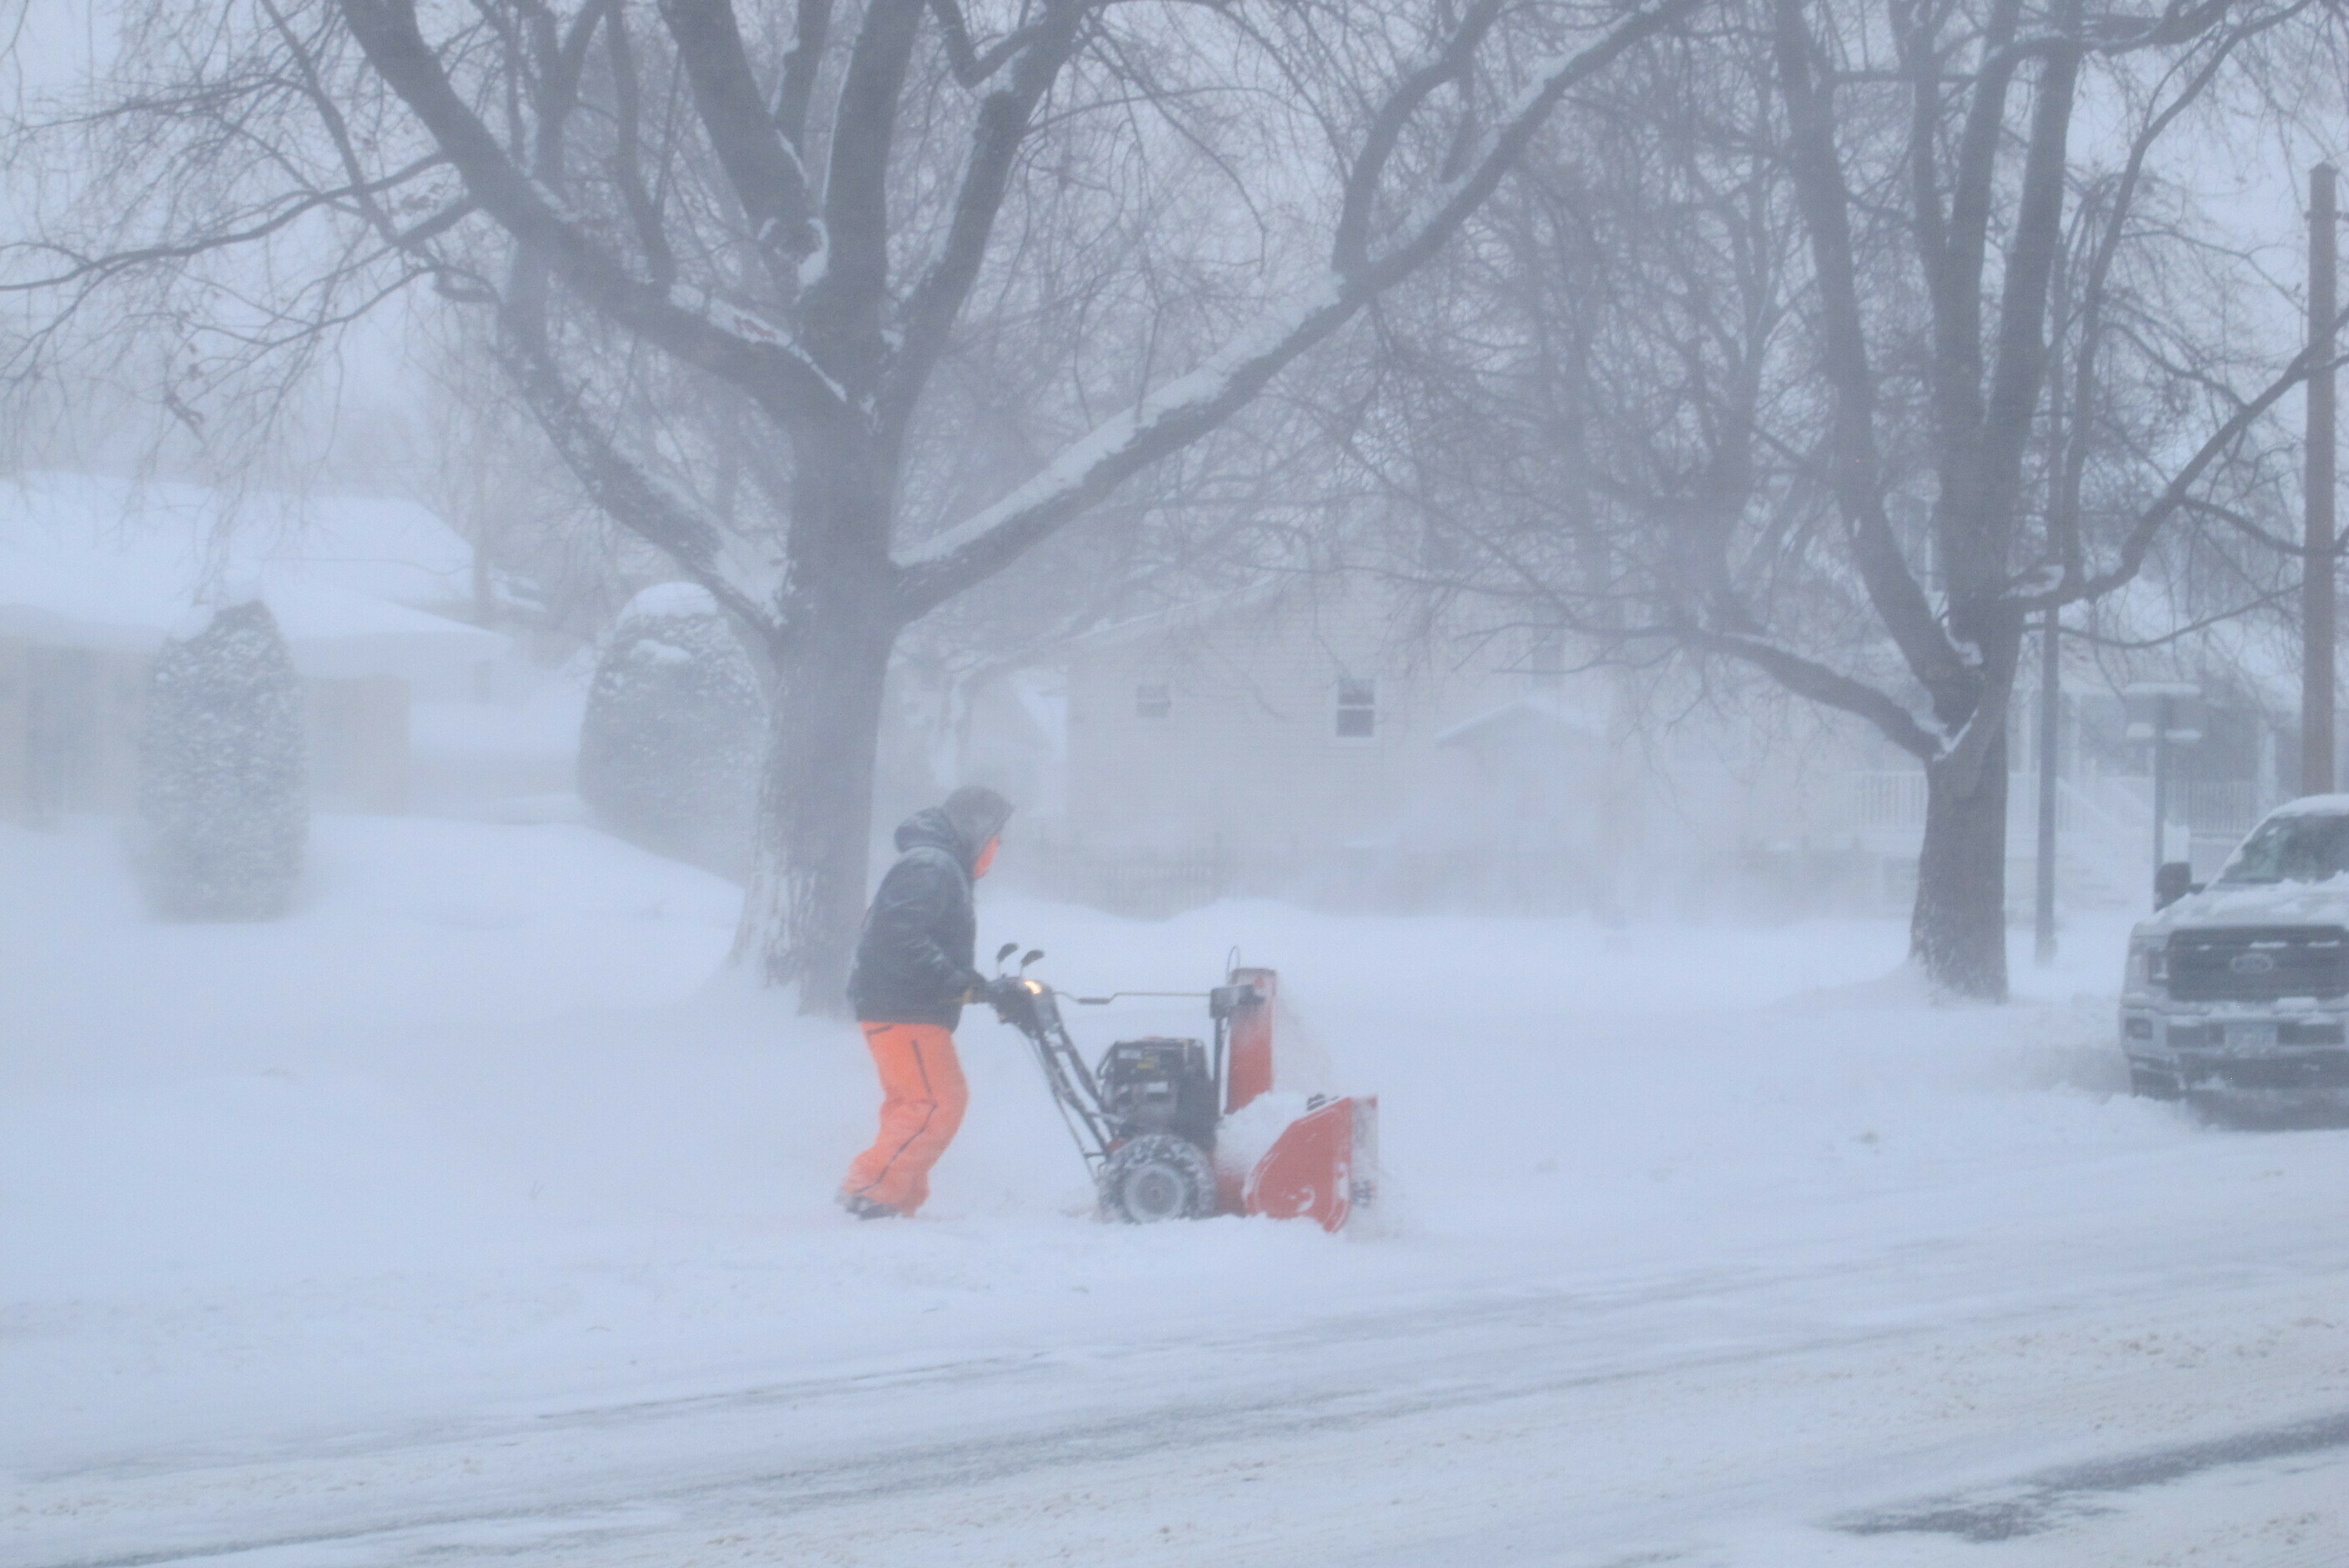 A man is bundled up against bitter wind and blowing snow as he operates a snowblower, Jan. 30, 2019, in Buffalo, N.Y. The area received more than a foot of snow since Tuesday and was under a blizzard warning.